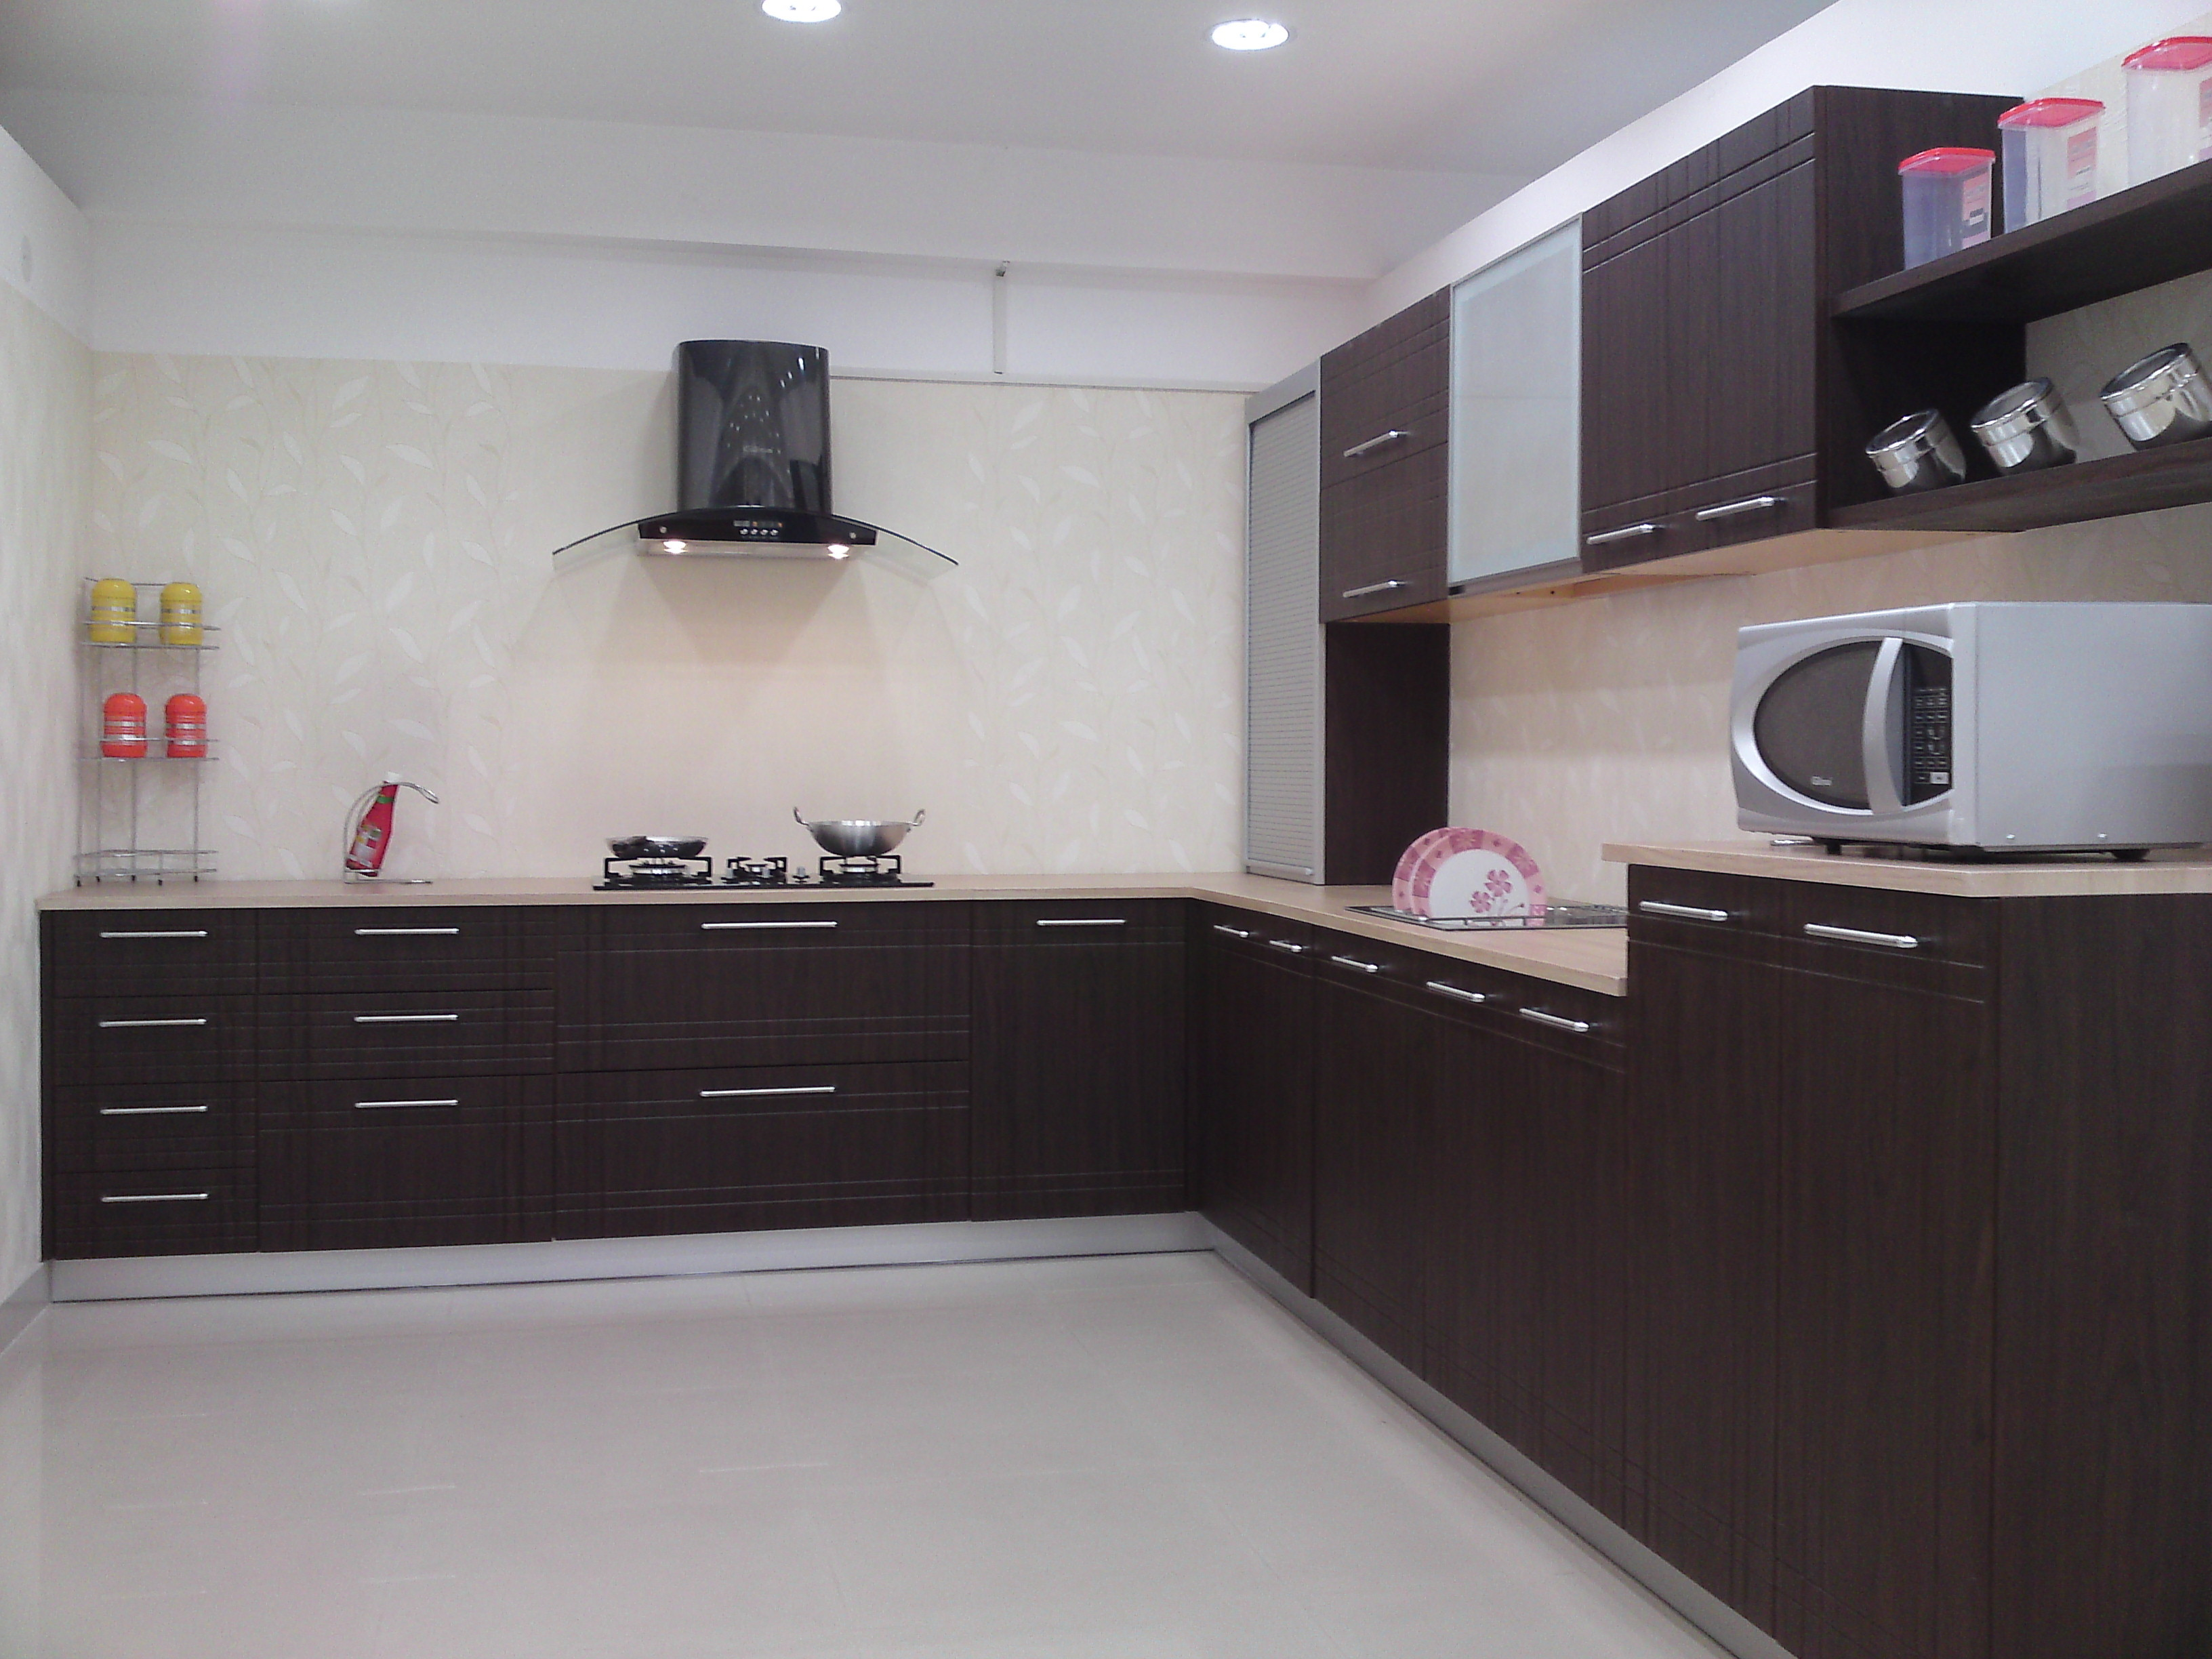 Home spaces intelligent solutions modular kitchens in for Sample modular kitchen designs